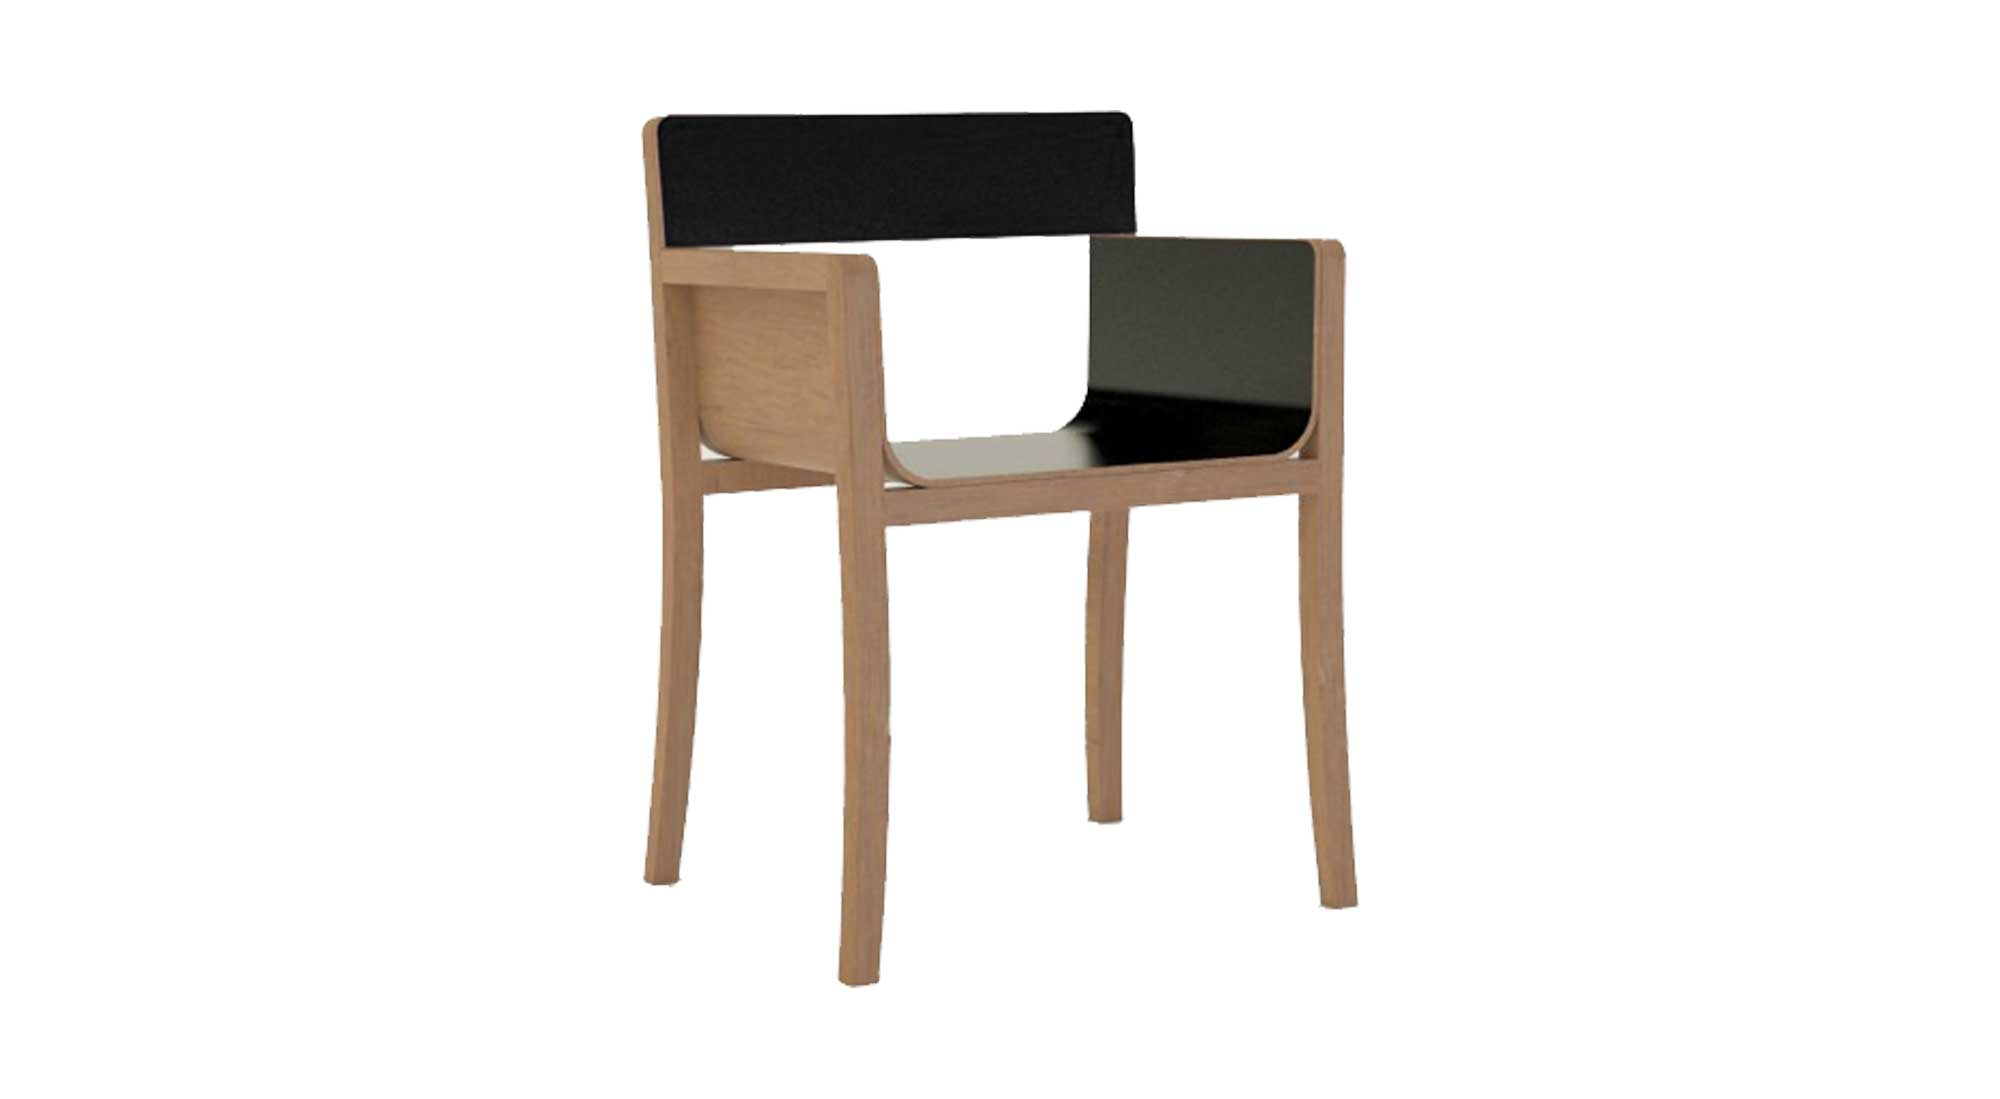 li-lith Chair by Gregor Eichinger for rosconili-lith Chair by Gregor Eichinger for rosconi